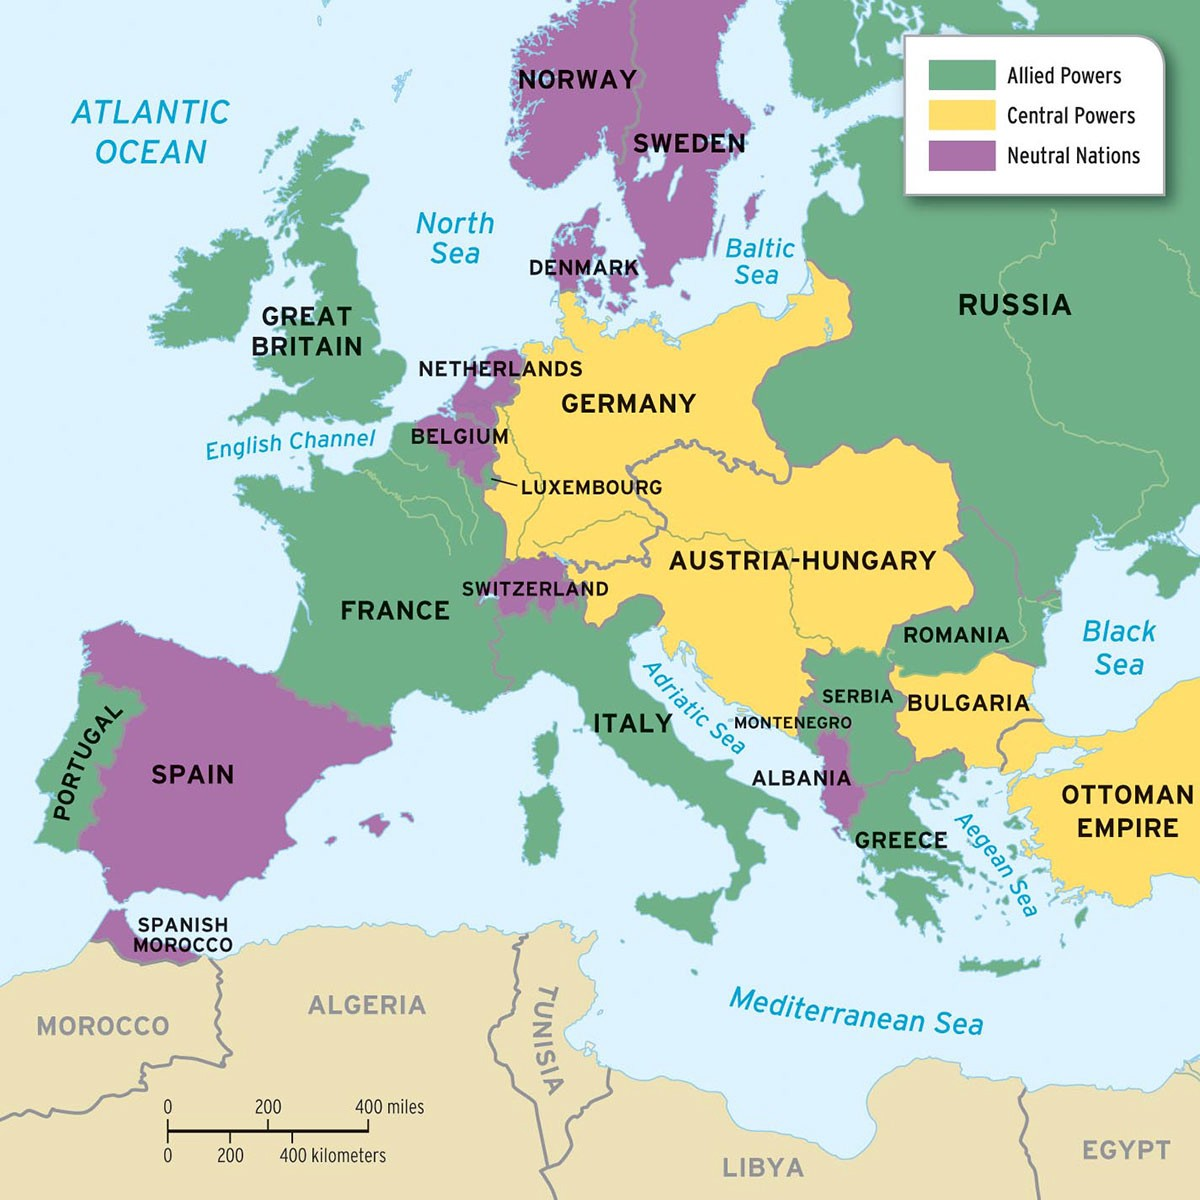 Intra-European Imperialism: Mitteleuropa and Intermarium on find a country on a map, north africa map, russia in asia, russia and byzantine empire map, europe map, nato bases map, russia map with cities and rivers, russia political map, russia and philippines map, russia and norway map, tajikistan on asia map, map of russia map, just asia map, countries border china map, russia and former soviet union map, russia and switzerland map, volgograd russia map, russia and france map, central america map, russia and caucasus map,